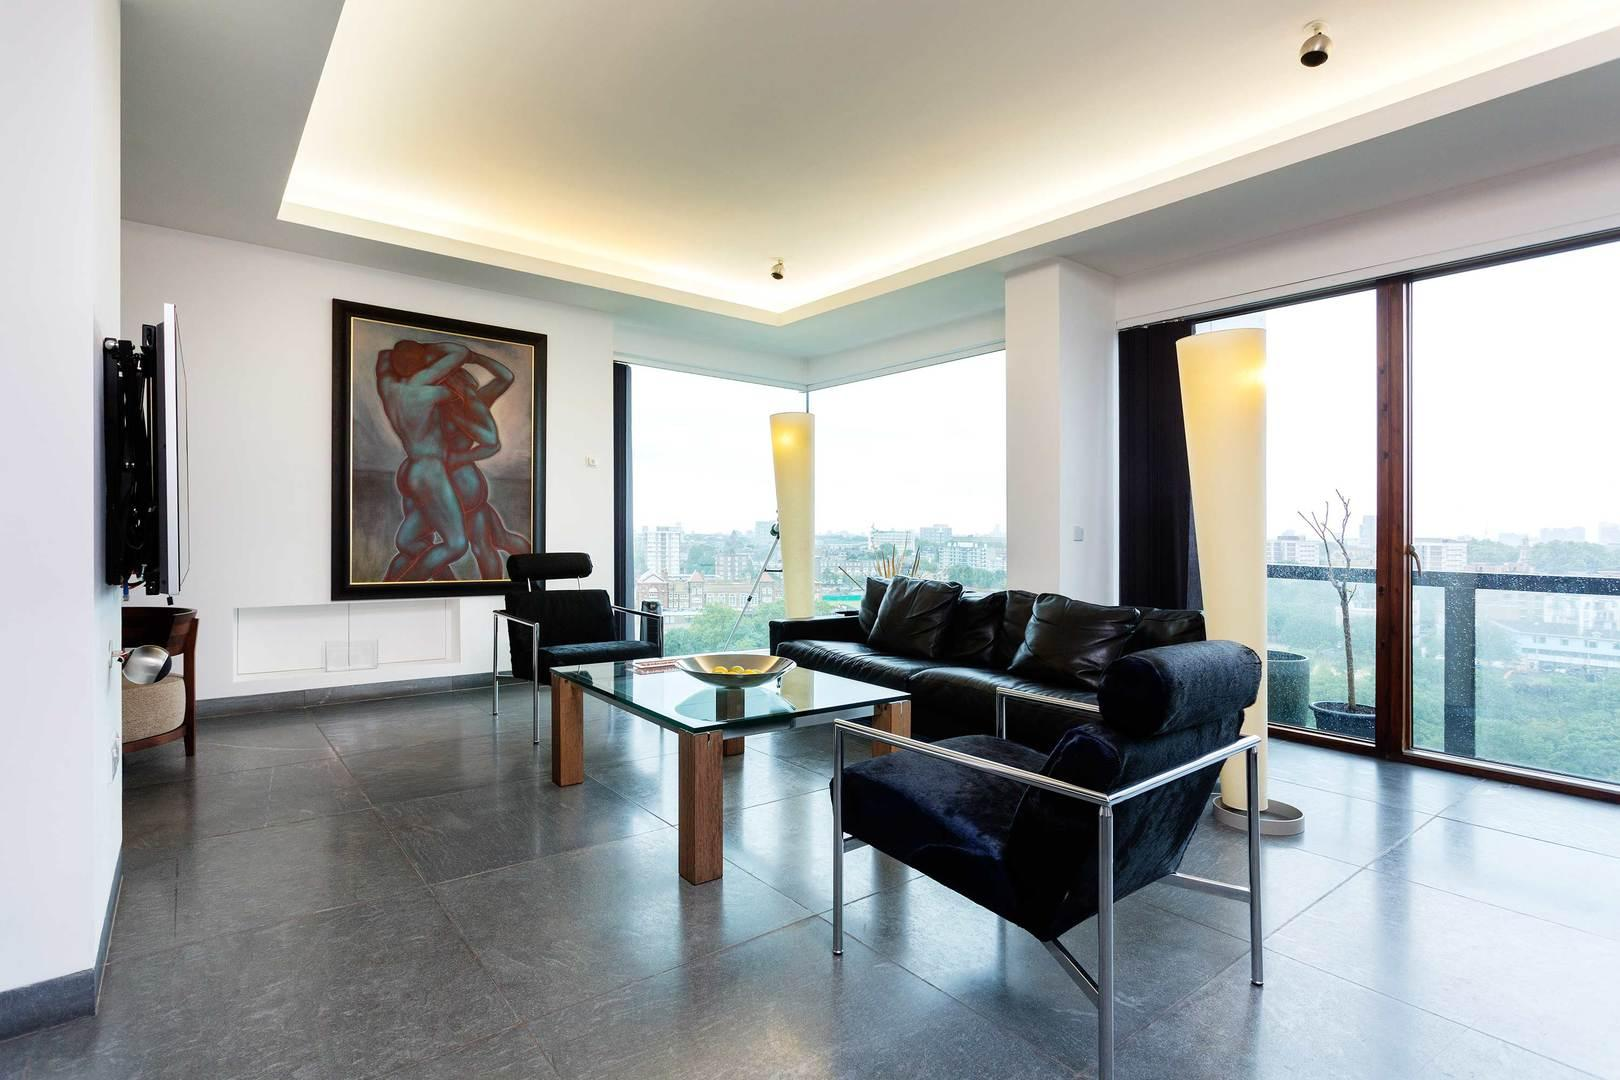 Property Image 1 - Superb Hoxton Penthouse with Astonishing Views over London